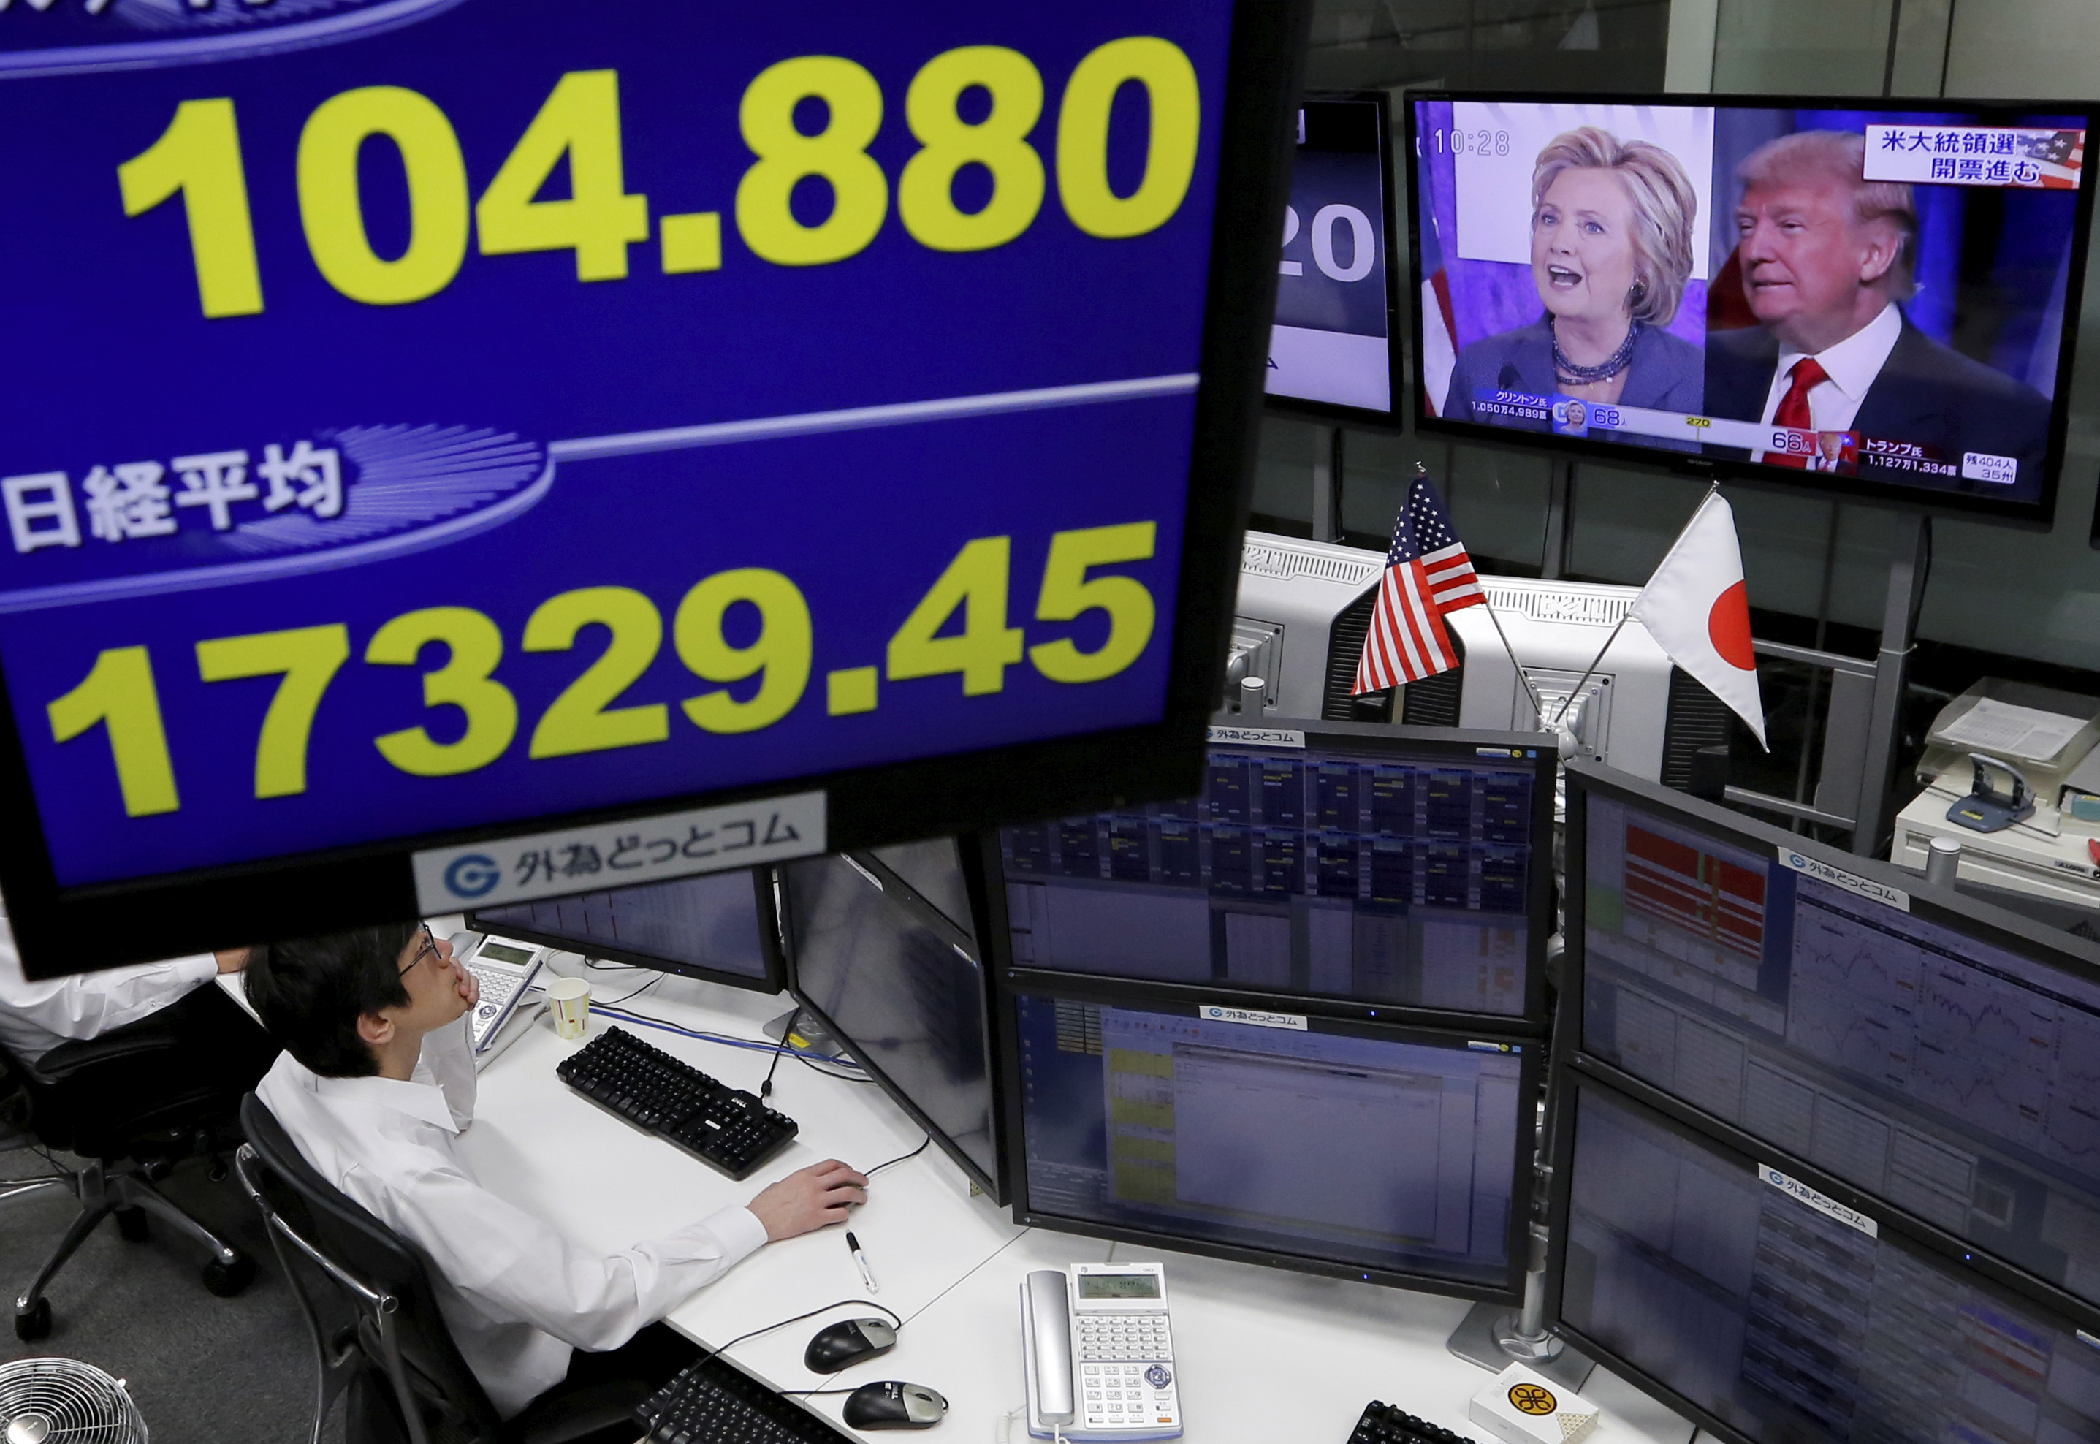 An employee of a foreign exchange trading company works near monitors displaying U.S. Democratic presidential nominee Hillary Clinton and U.S. Republican presidential nominee Donald Trump on TV news, the Japanese yen's exchange rate against the U.S. dollar (L top) and Japan's Nikkei average in Tokyo, Japan, November 9, 2016.